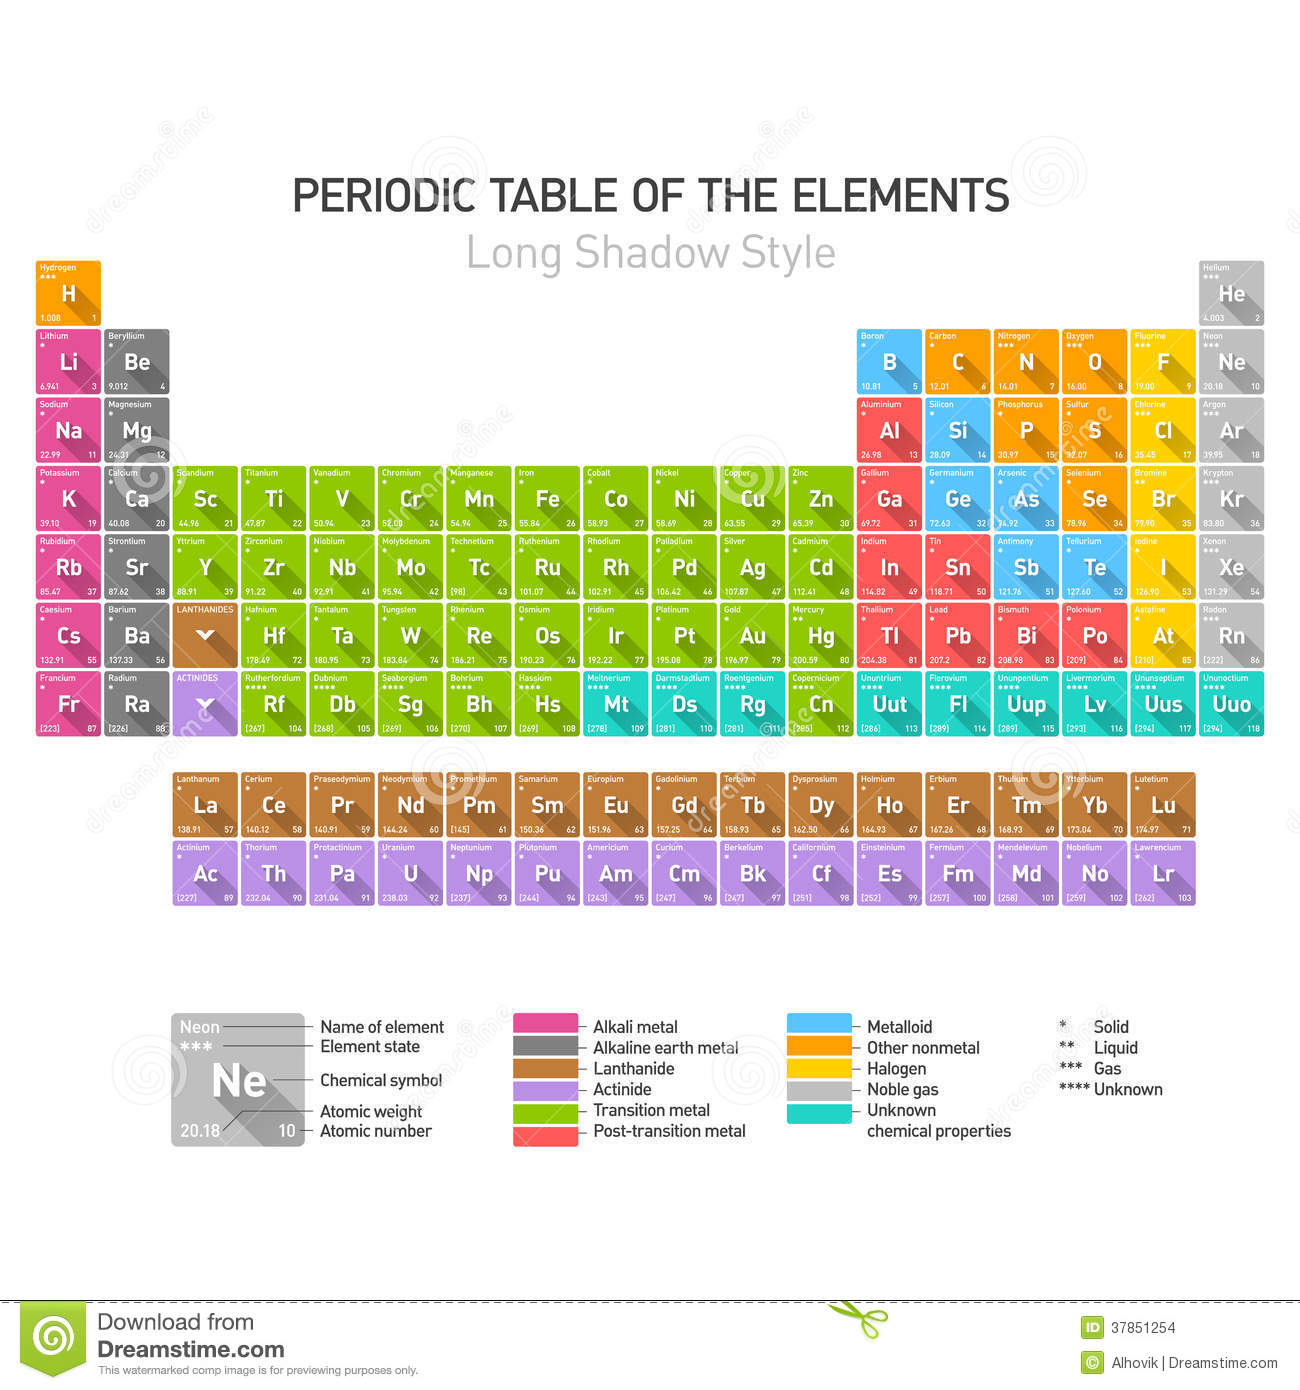 Periodic table h2o gallery periodic table images spdf blocks periodic table gallery periodic table images spdf blocks periodic table gallery periodic table images gamestrikefo Choice Image